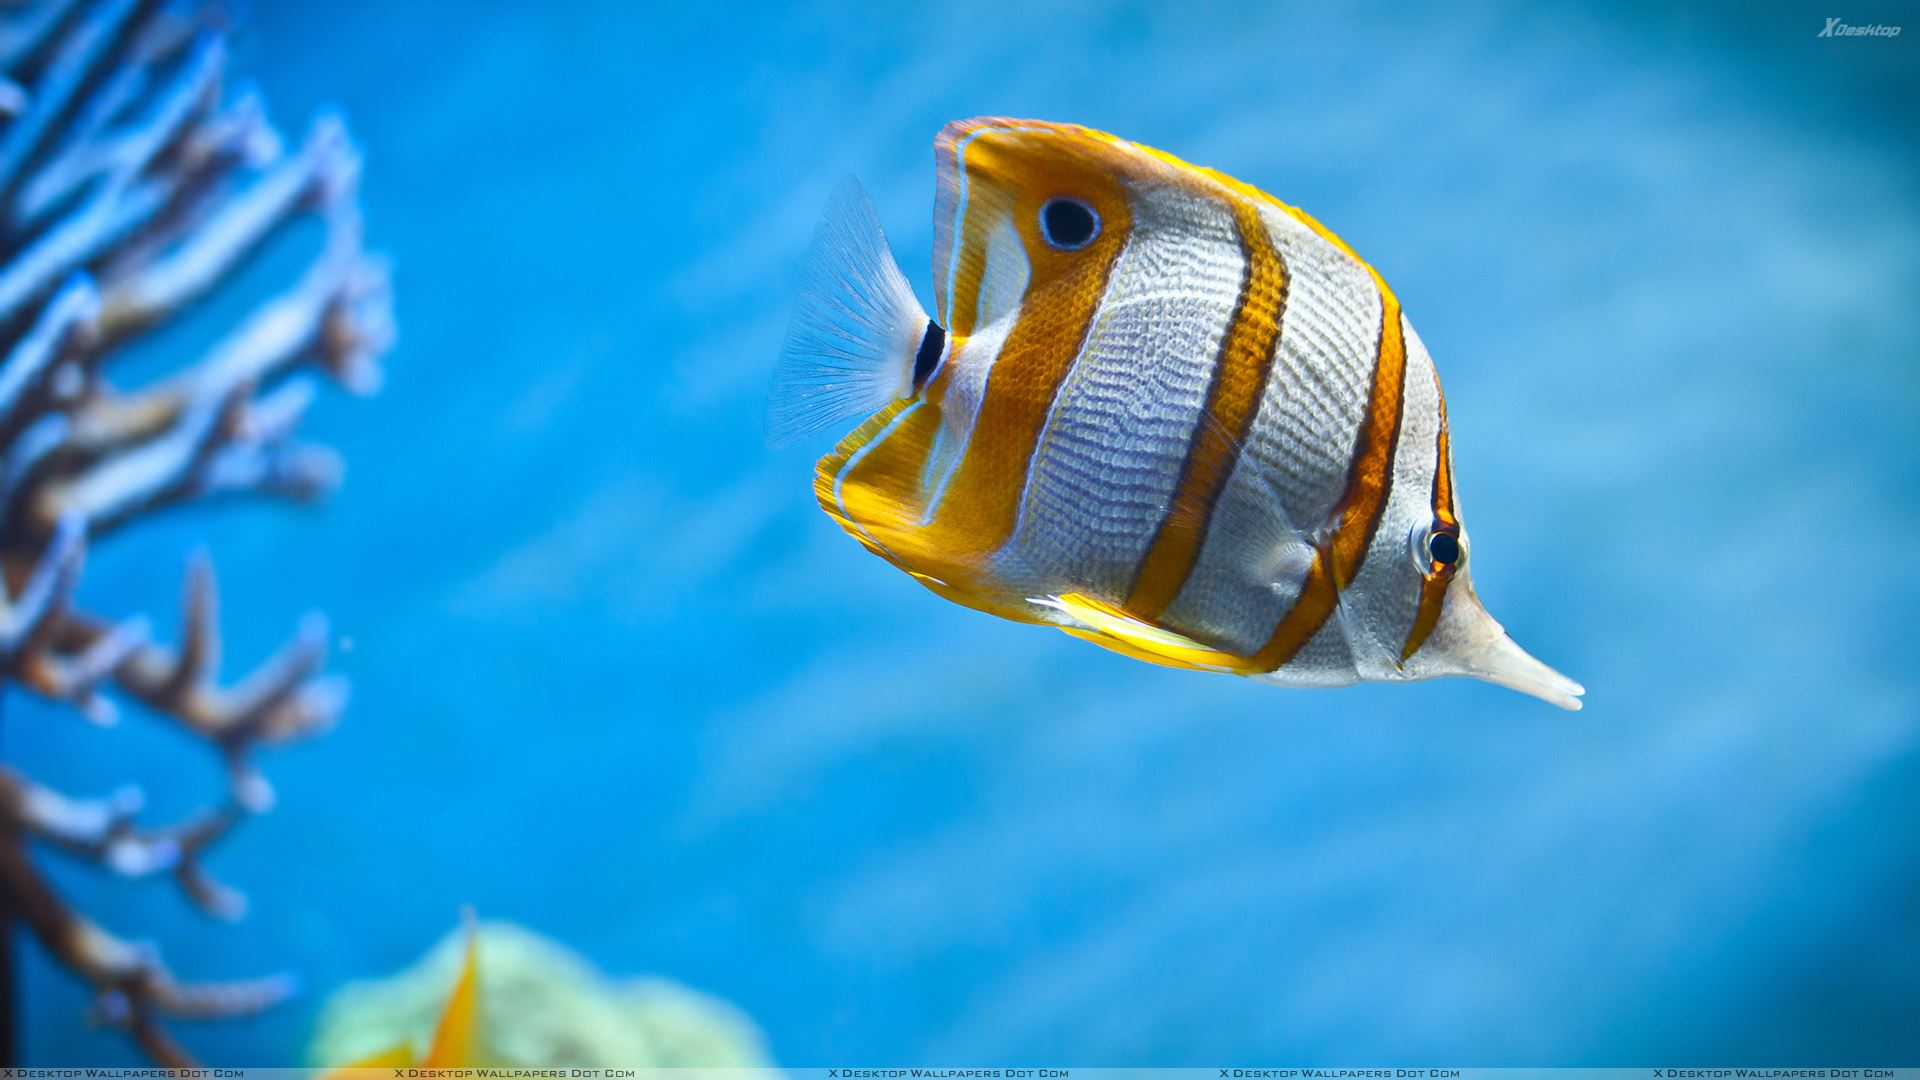 fish in blue water wallpaper